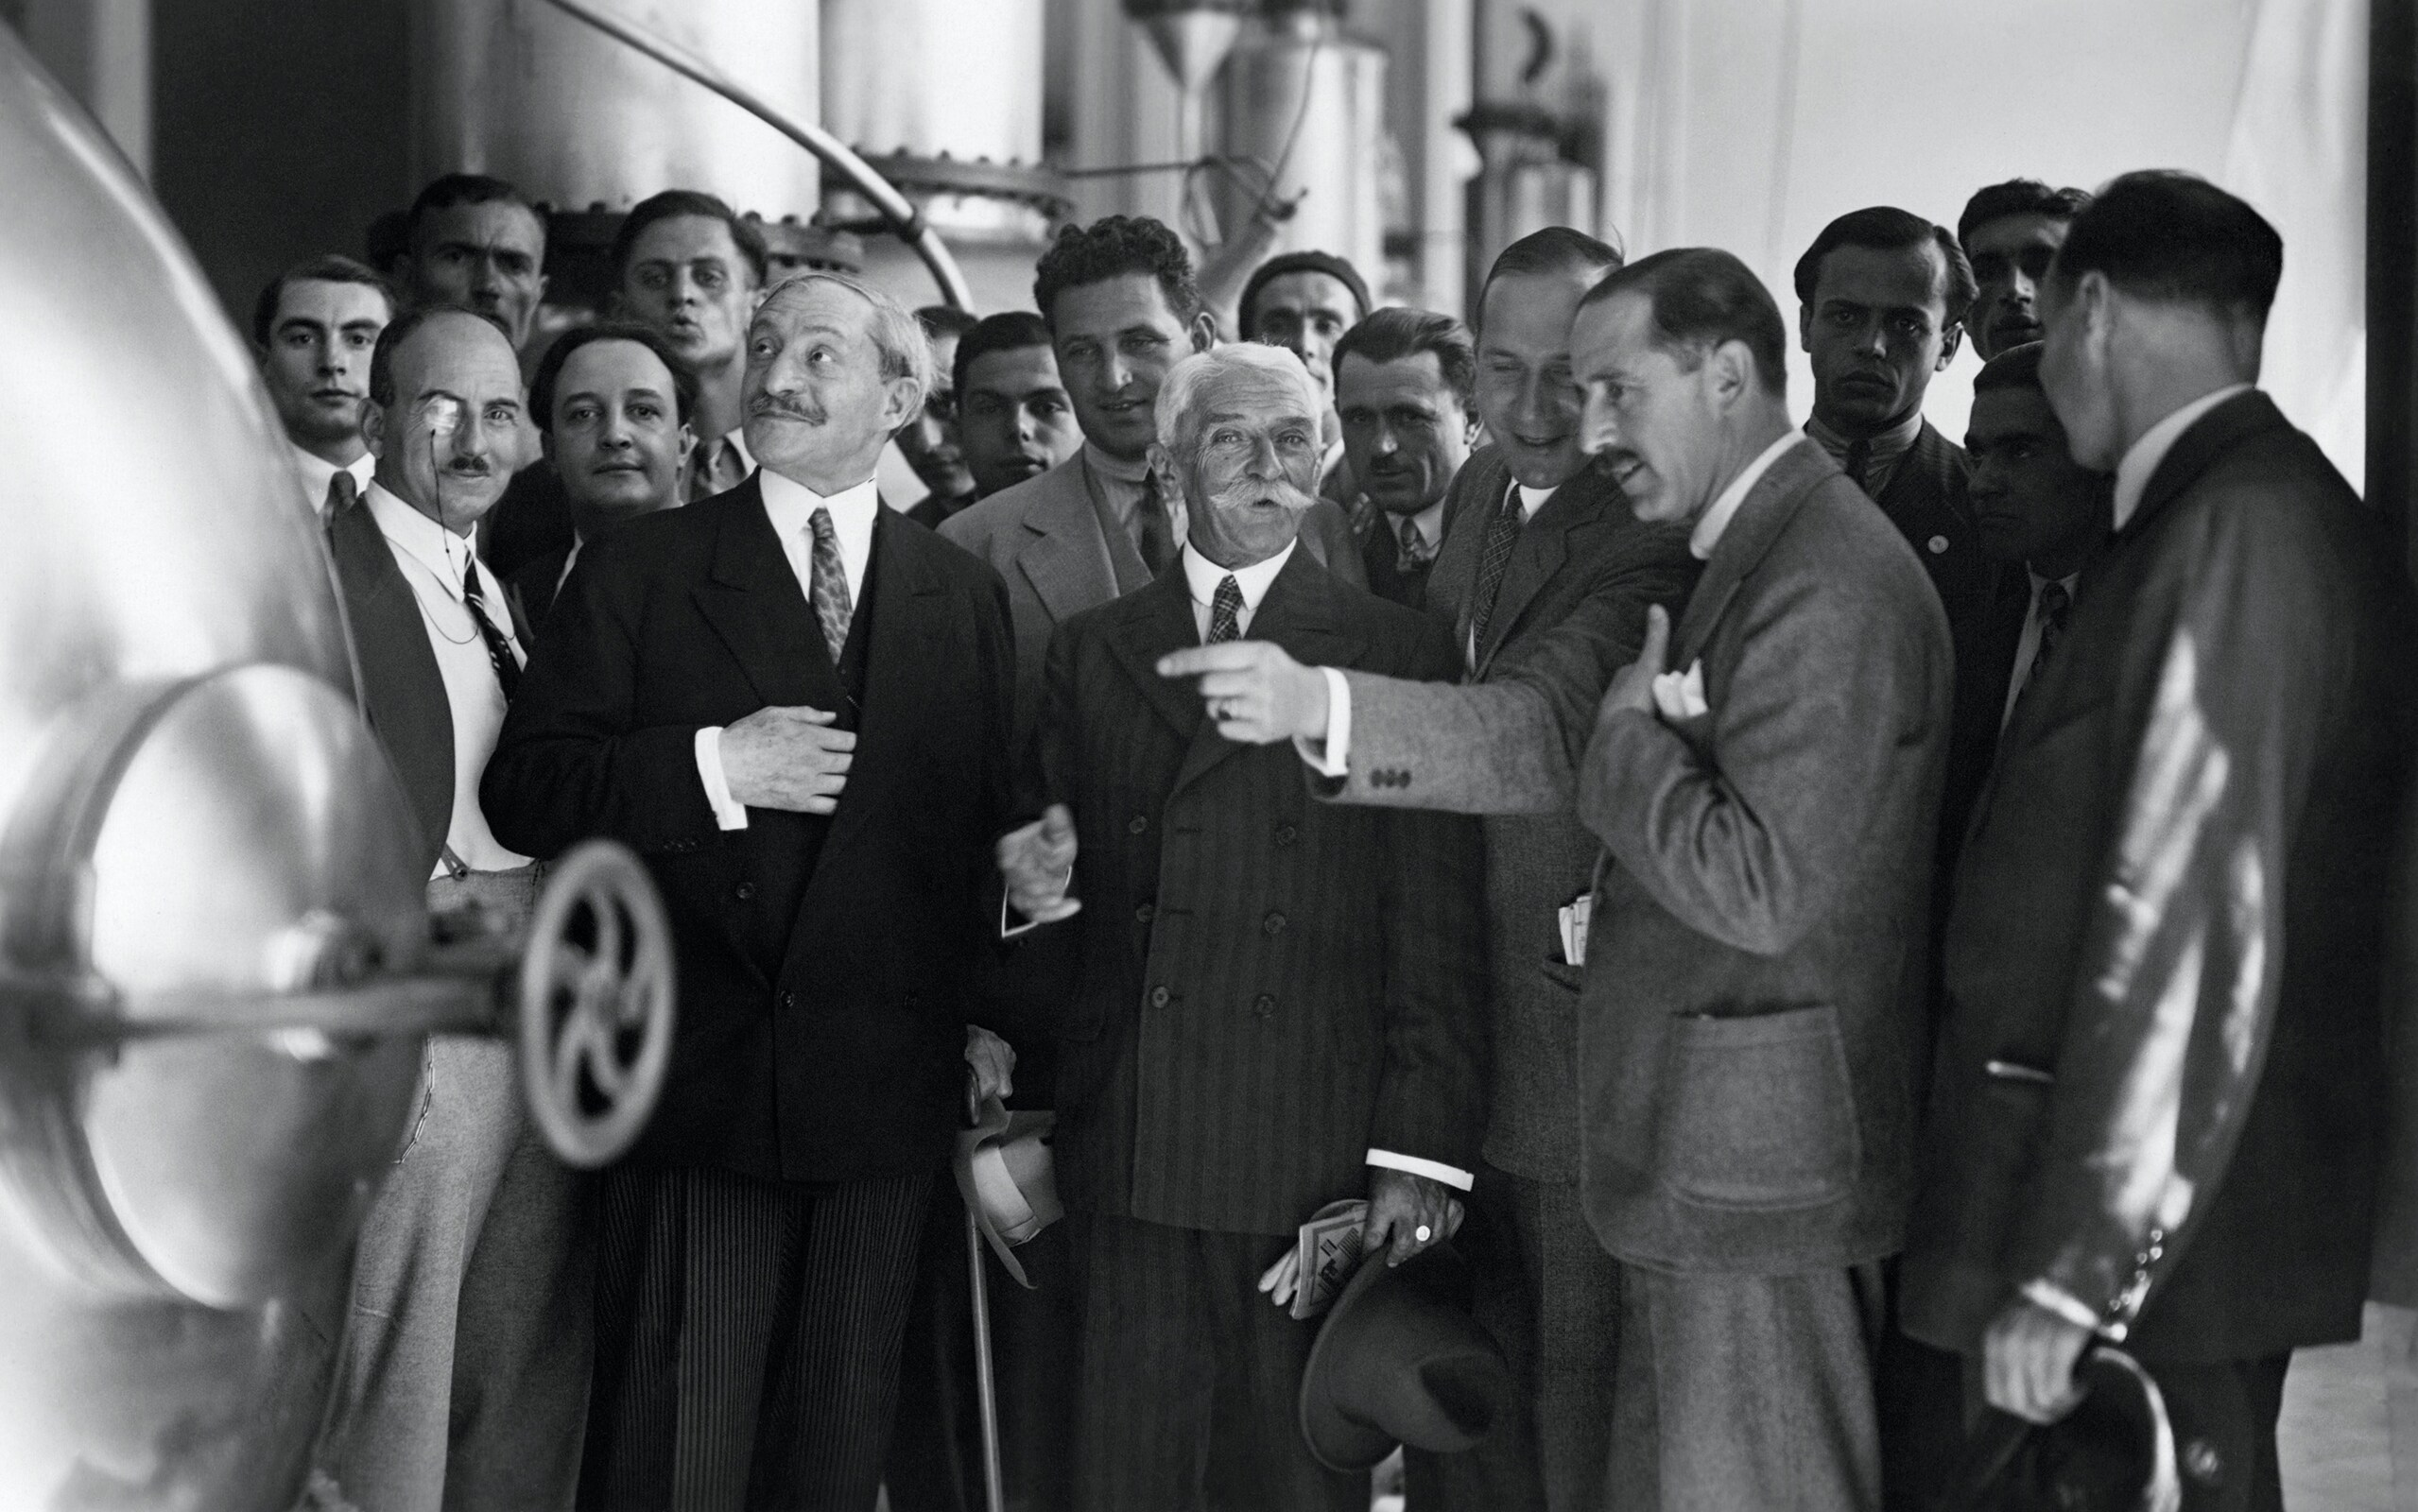 Visit of the Ovomaltine factory, Neuenegg, 1932 - In the center, M. CANELLOPOULOS, the Greek ambassador to Switzerland, Baron Pierre de COUBERTIN and Francis-Marius MESSERLI (from the side), Secretary General of the National Olympic Committee of Switzerland (SUI) surrounded by Greek athletes.